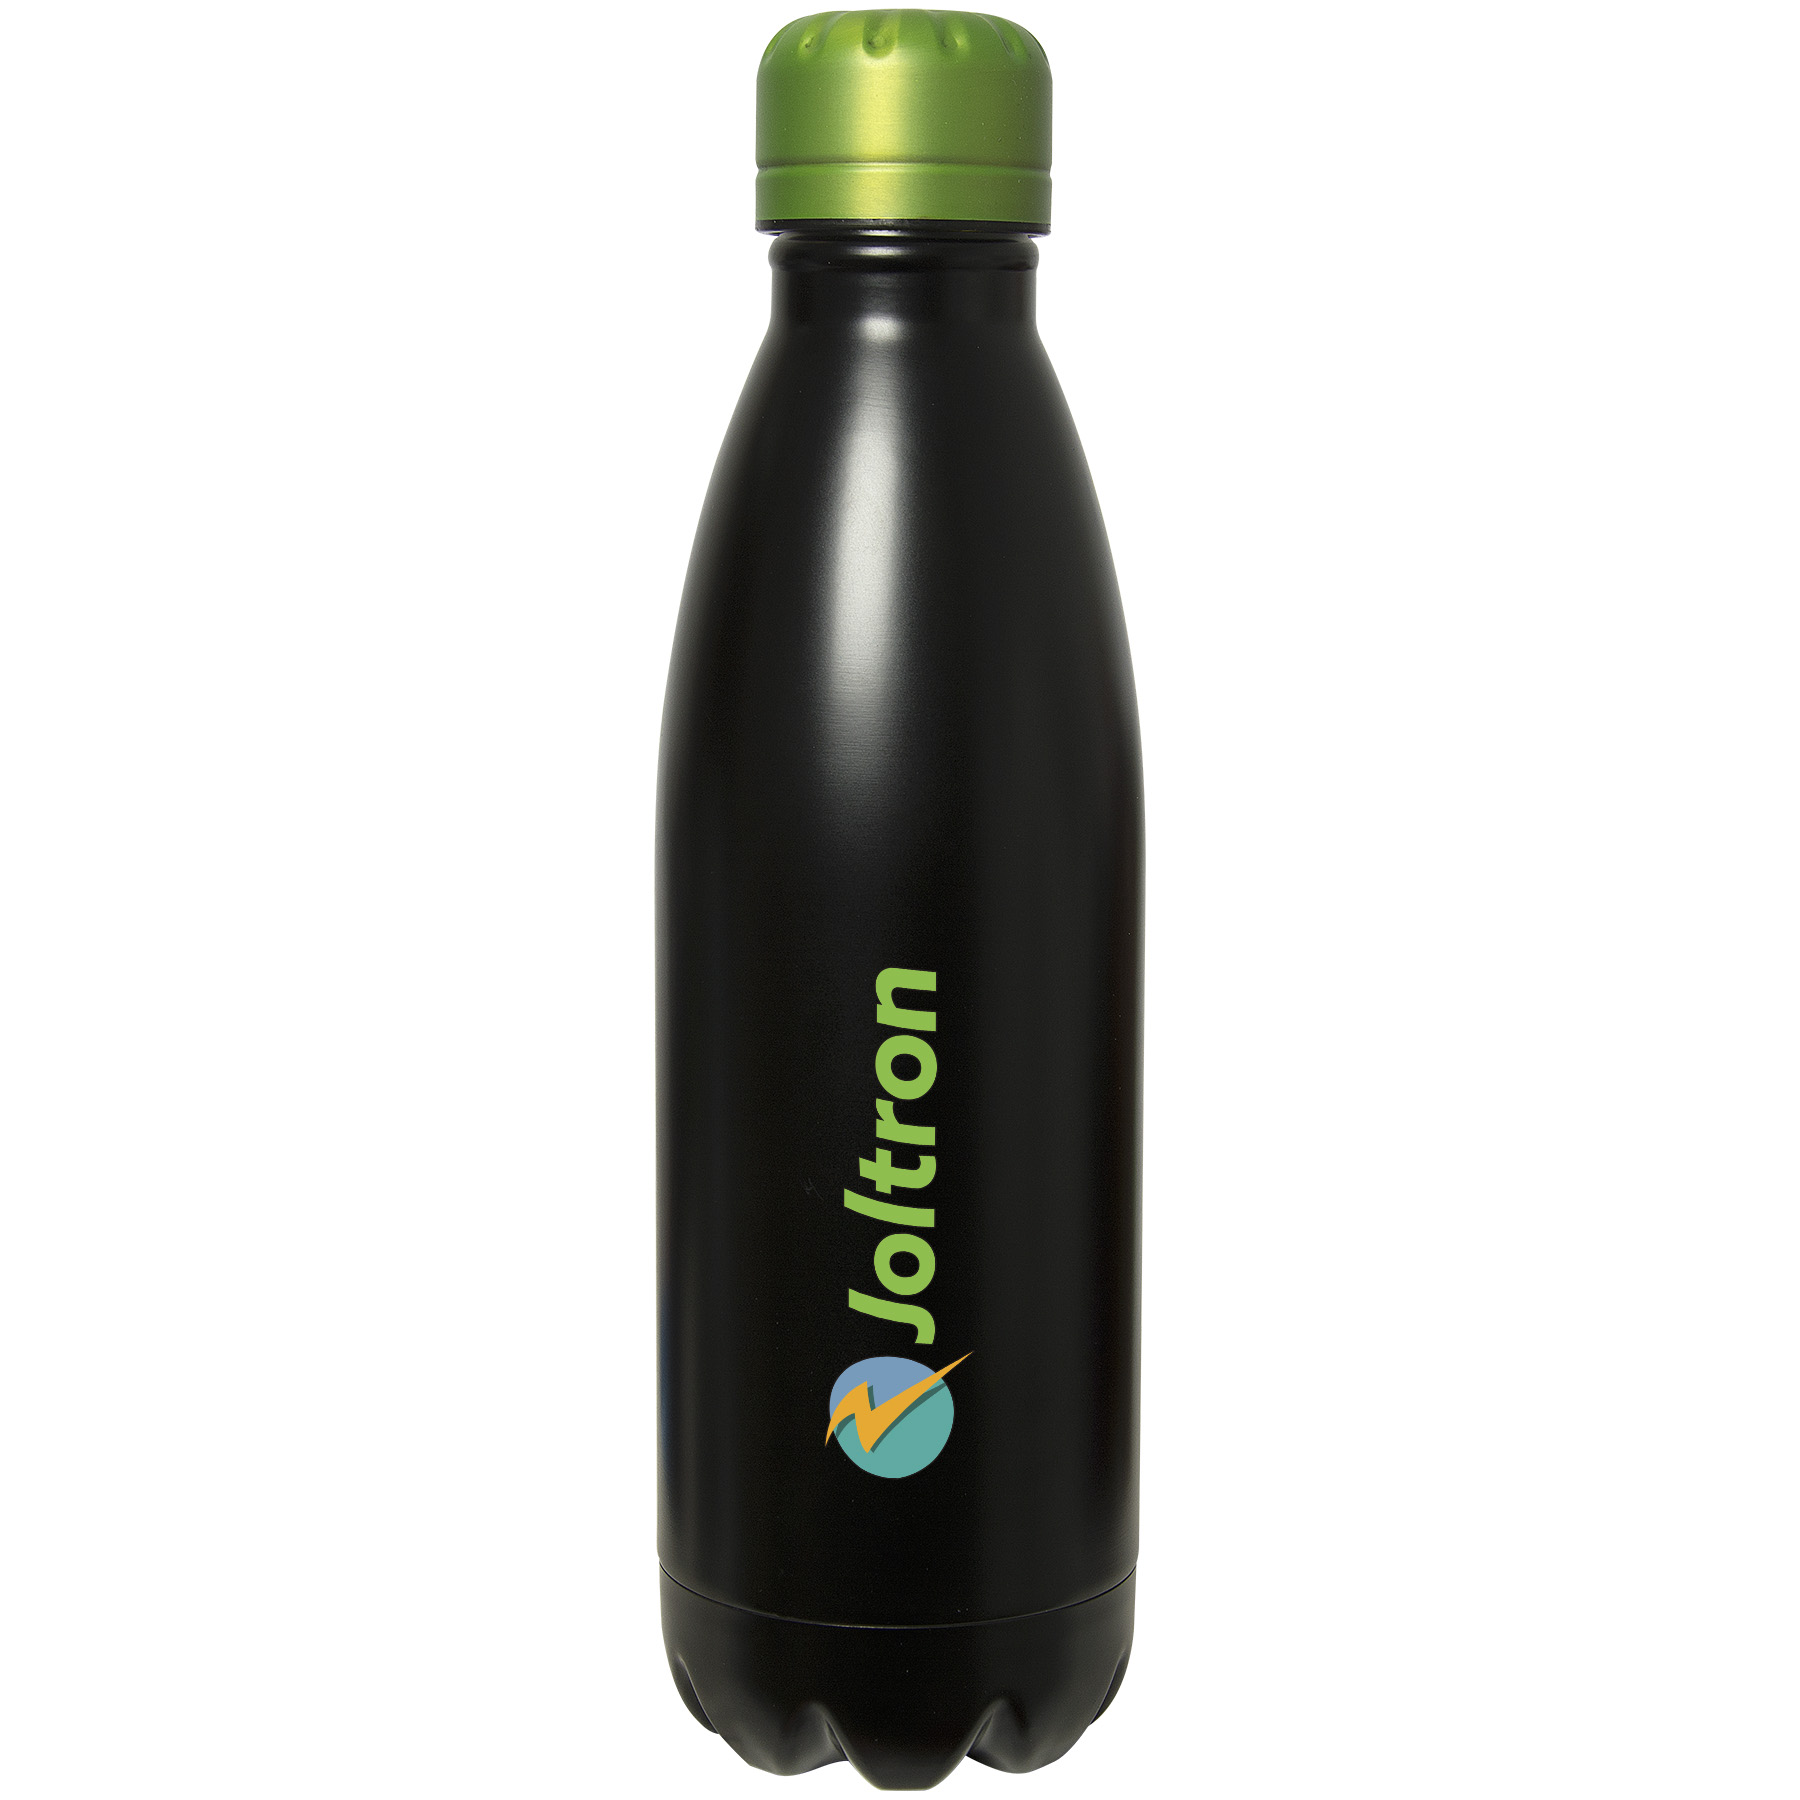 Rockit Top 500 Ml. (17 Fl. Oz.) Bottle, WB1030, 1 Colour Imprint